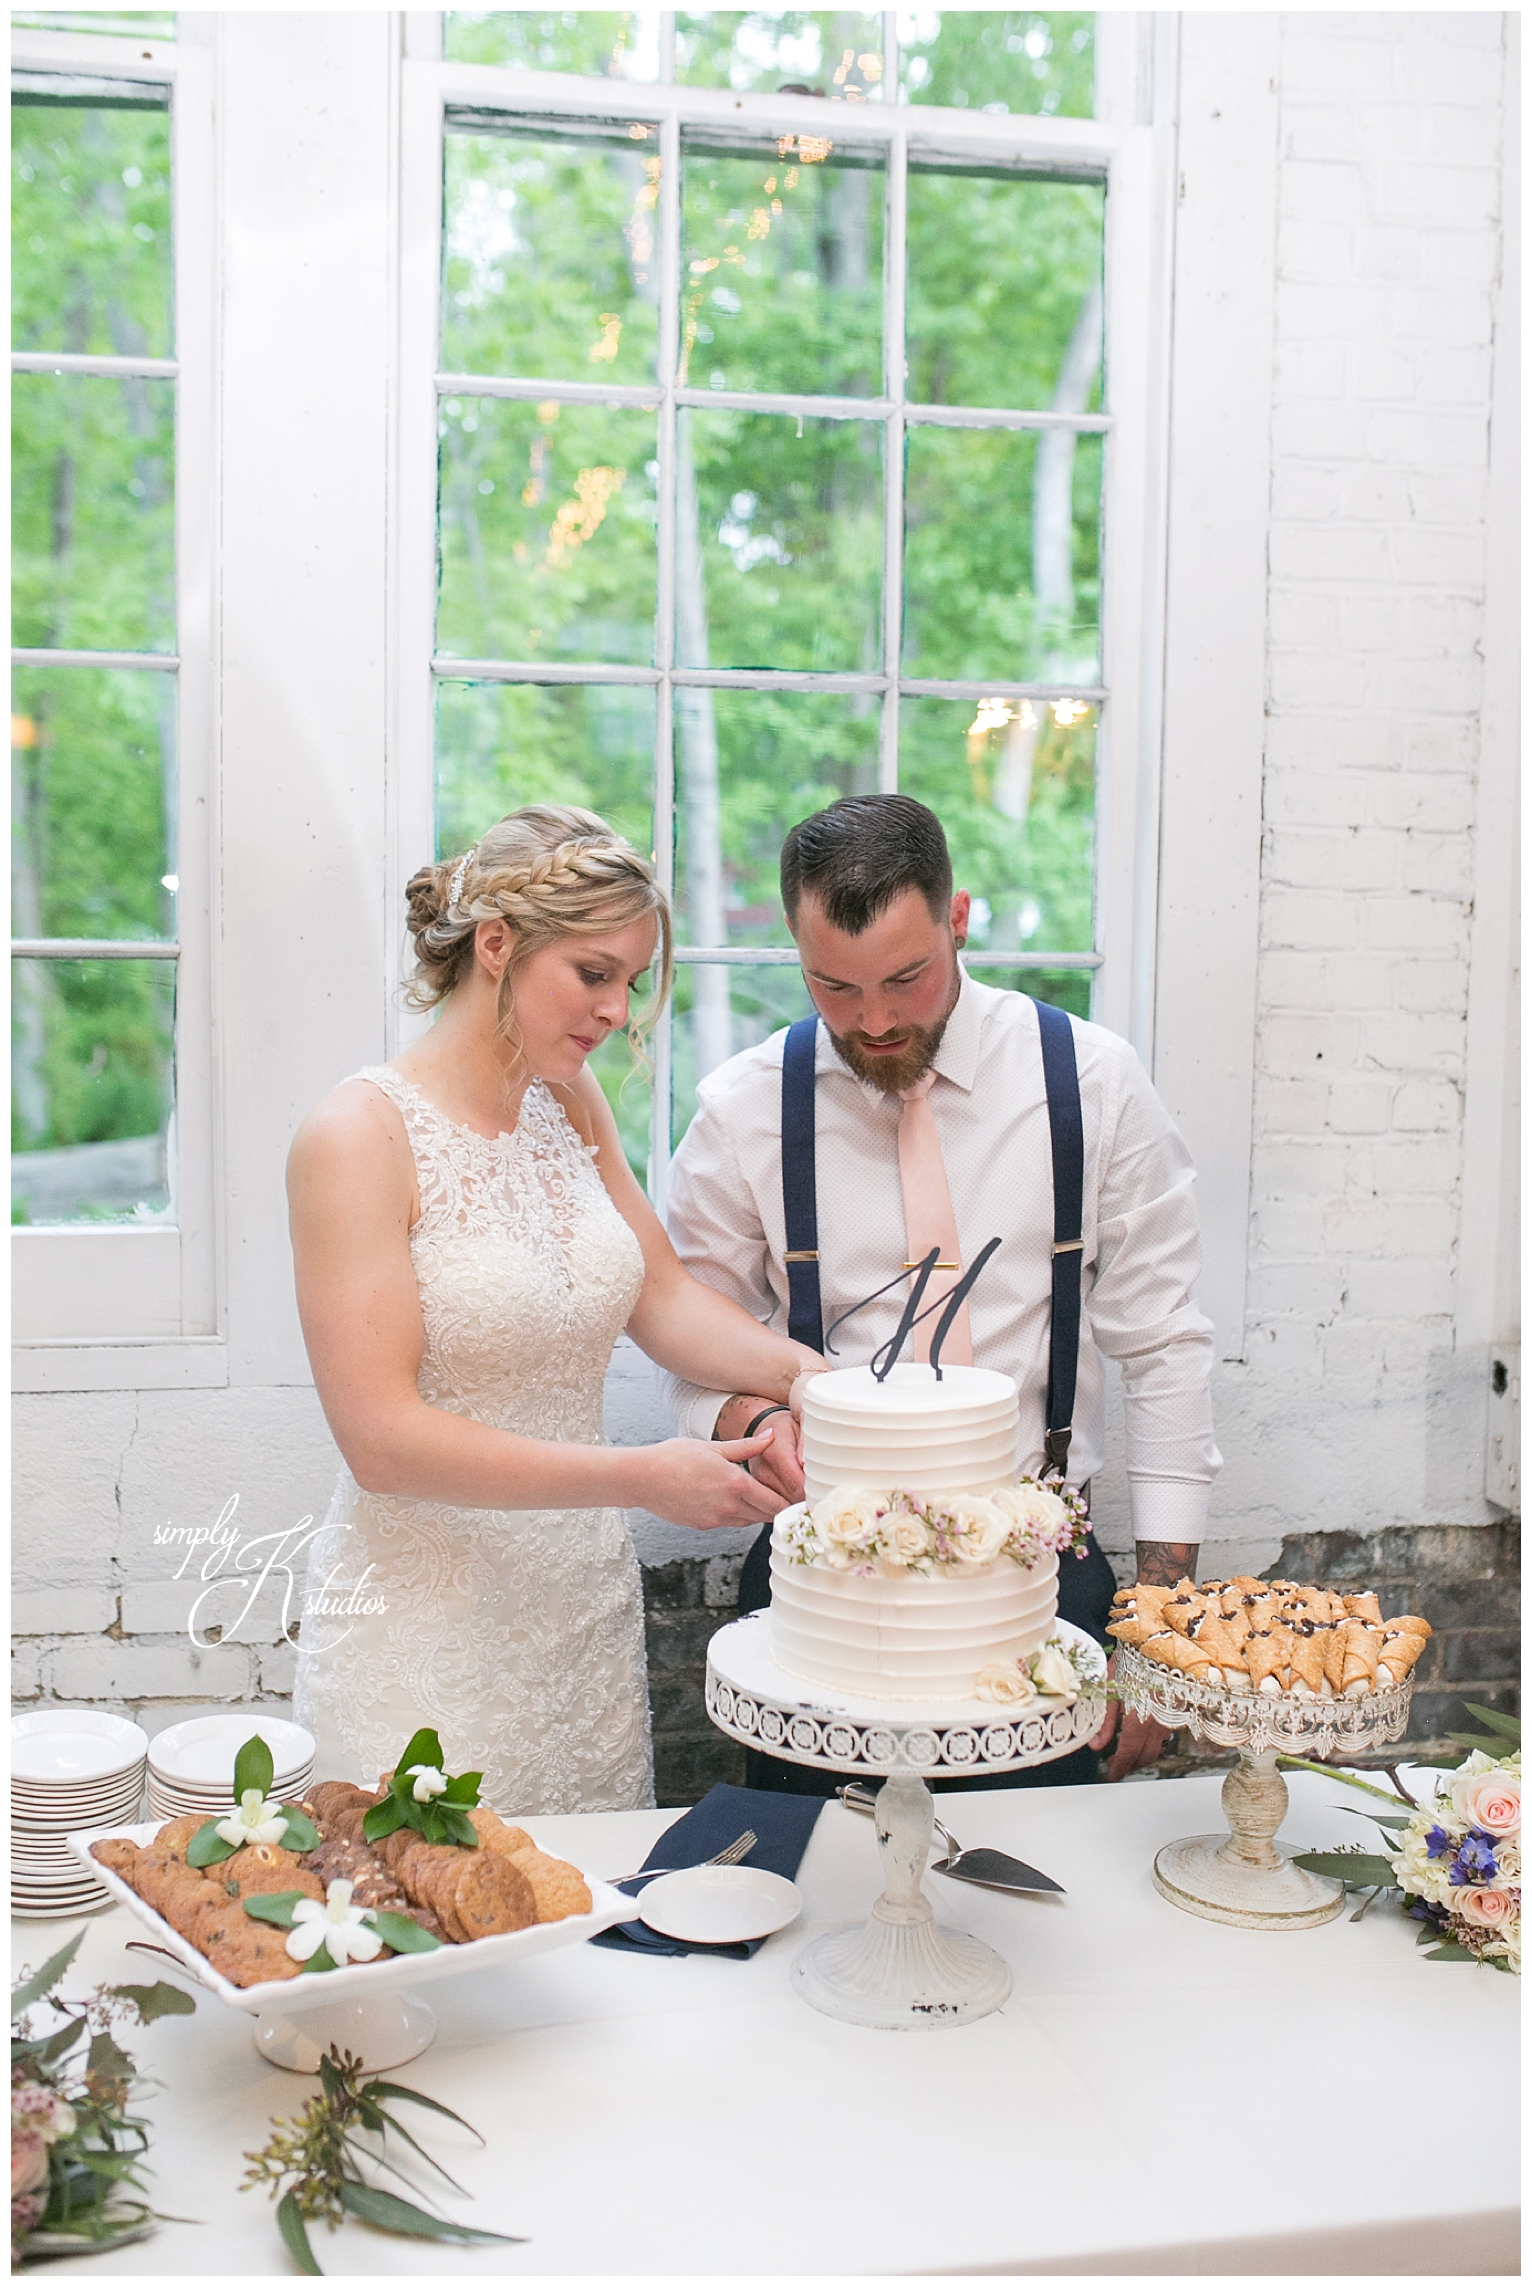 Cake Cutting at The Lace Factory.jpg